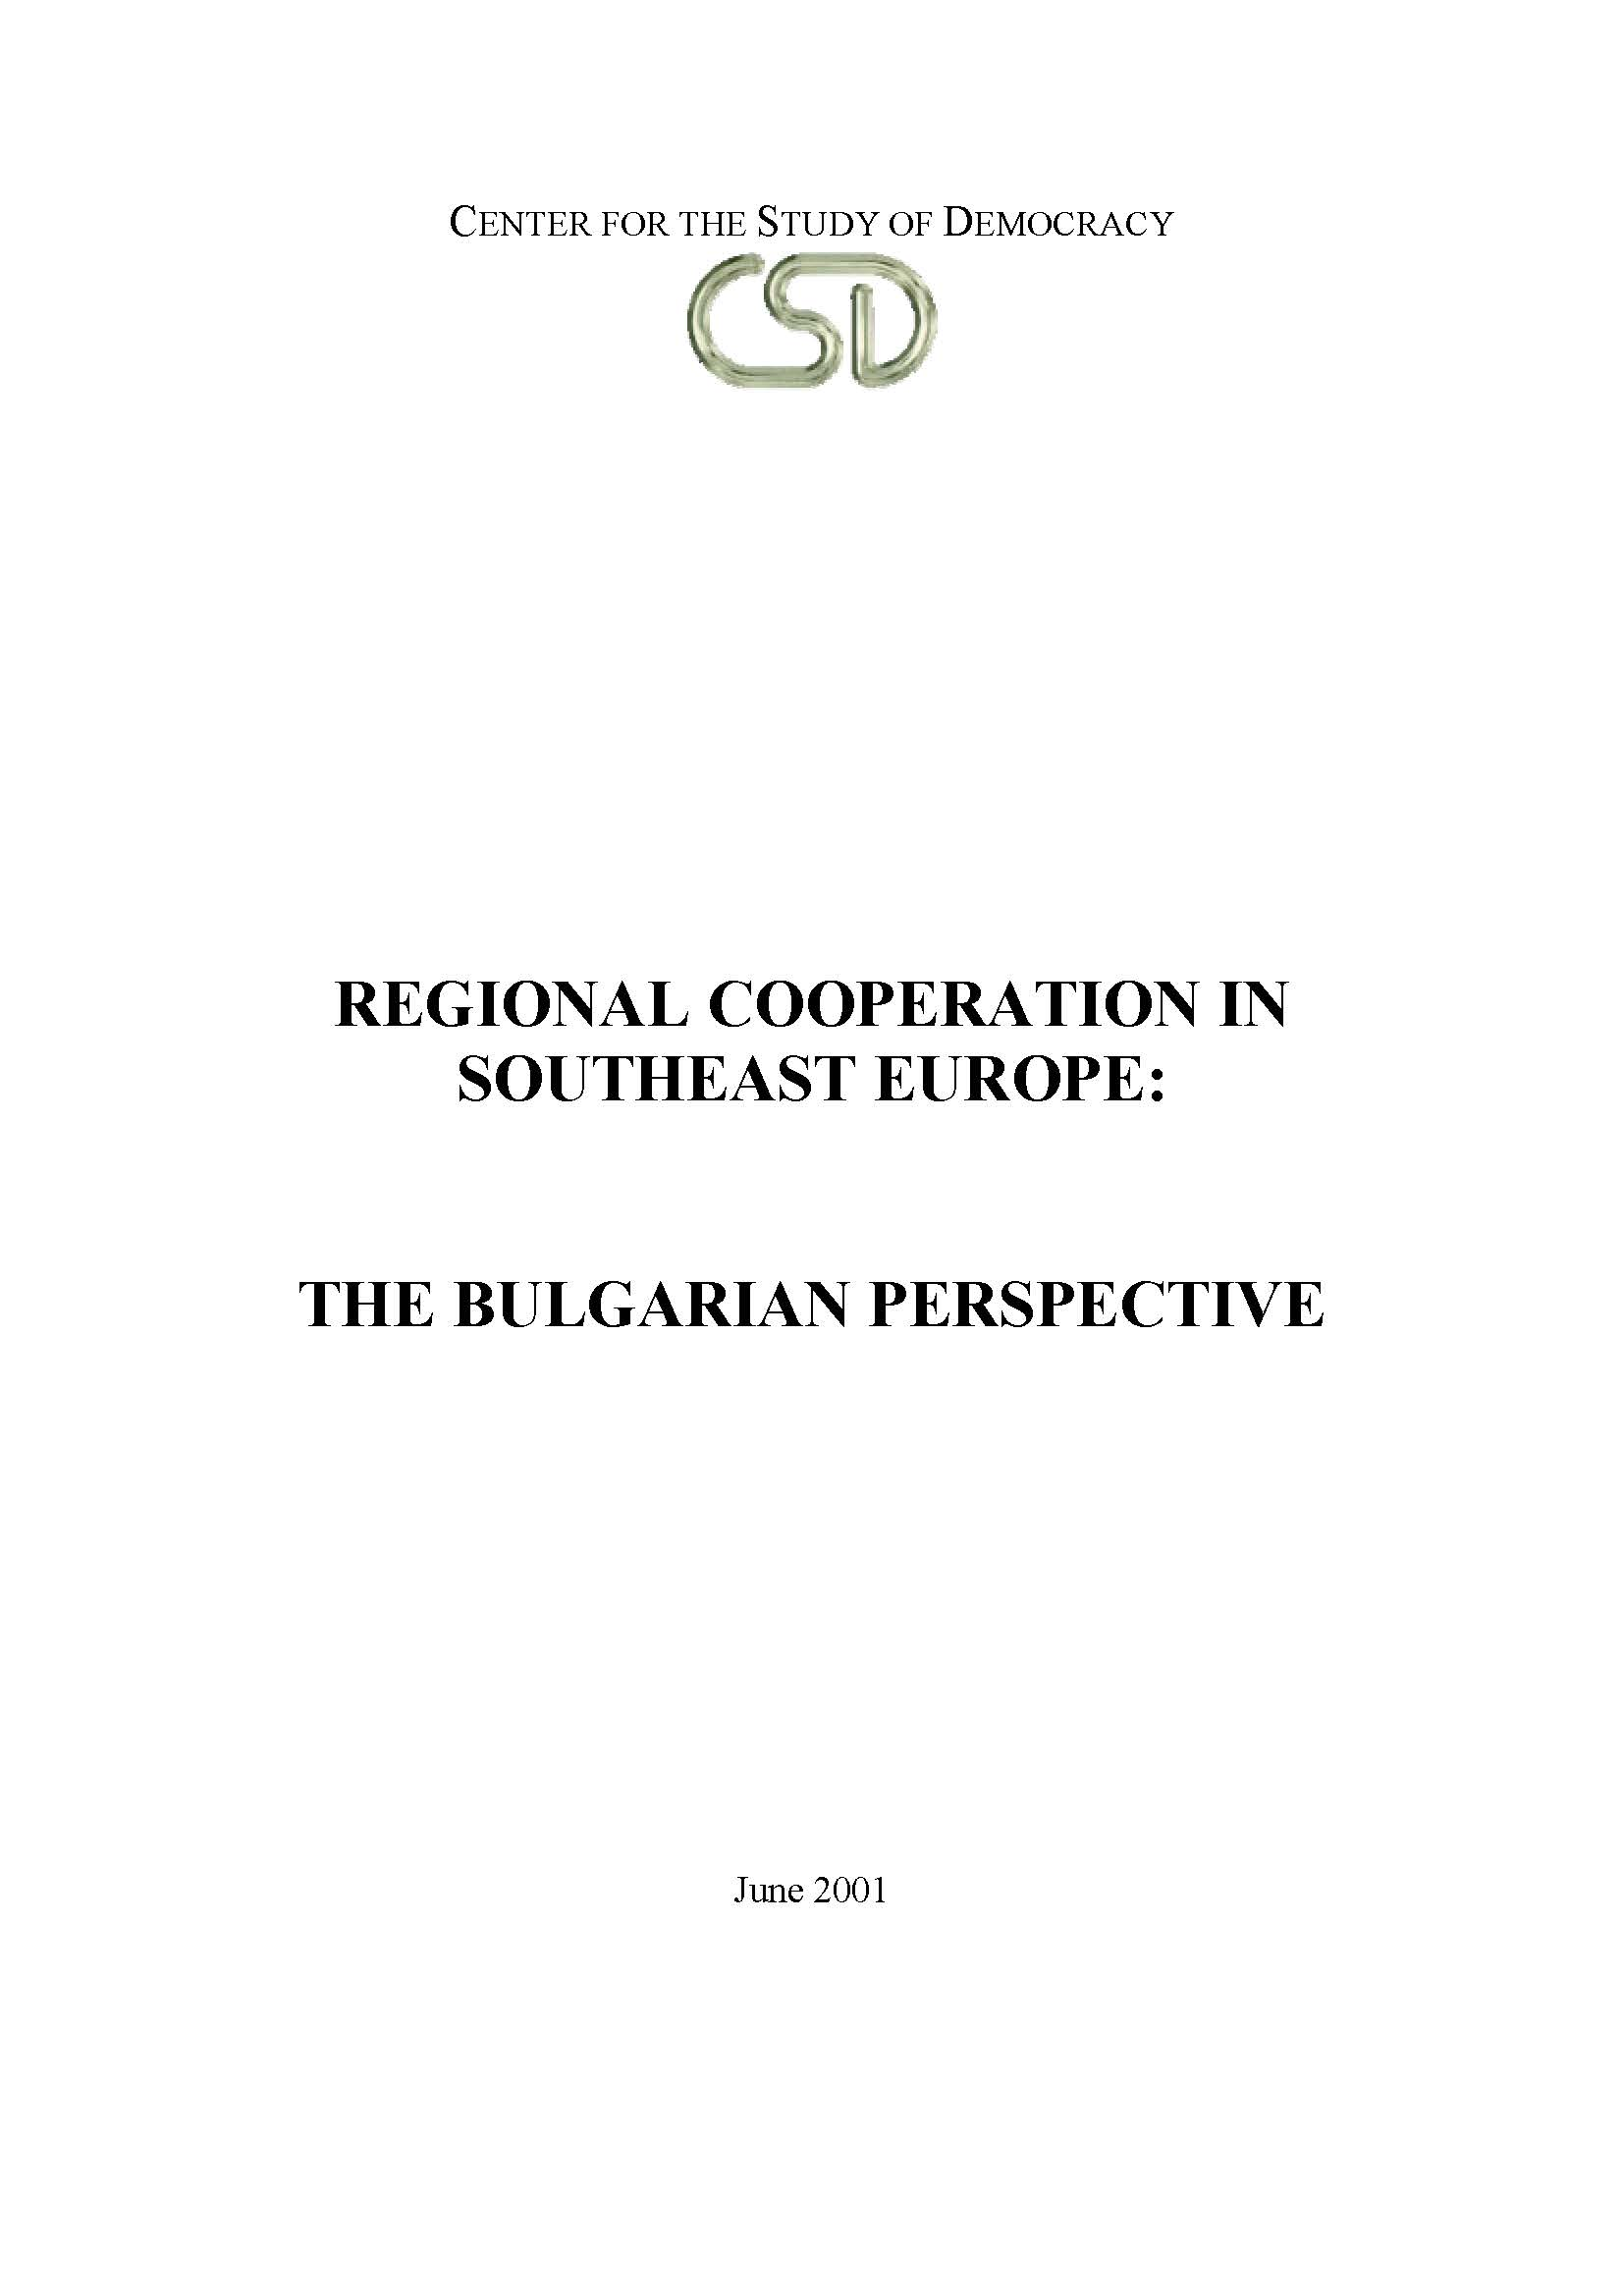 Regional Cooperation in Southeast Europe: The Bulgarian Perspective